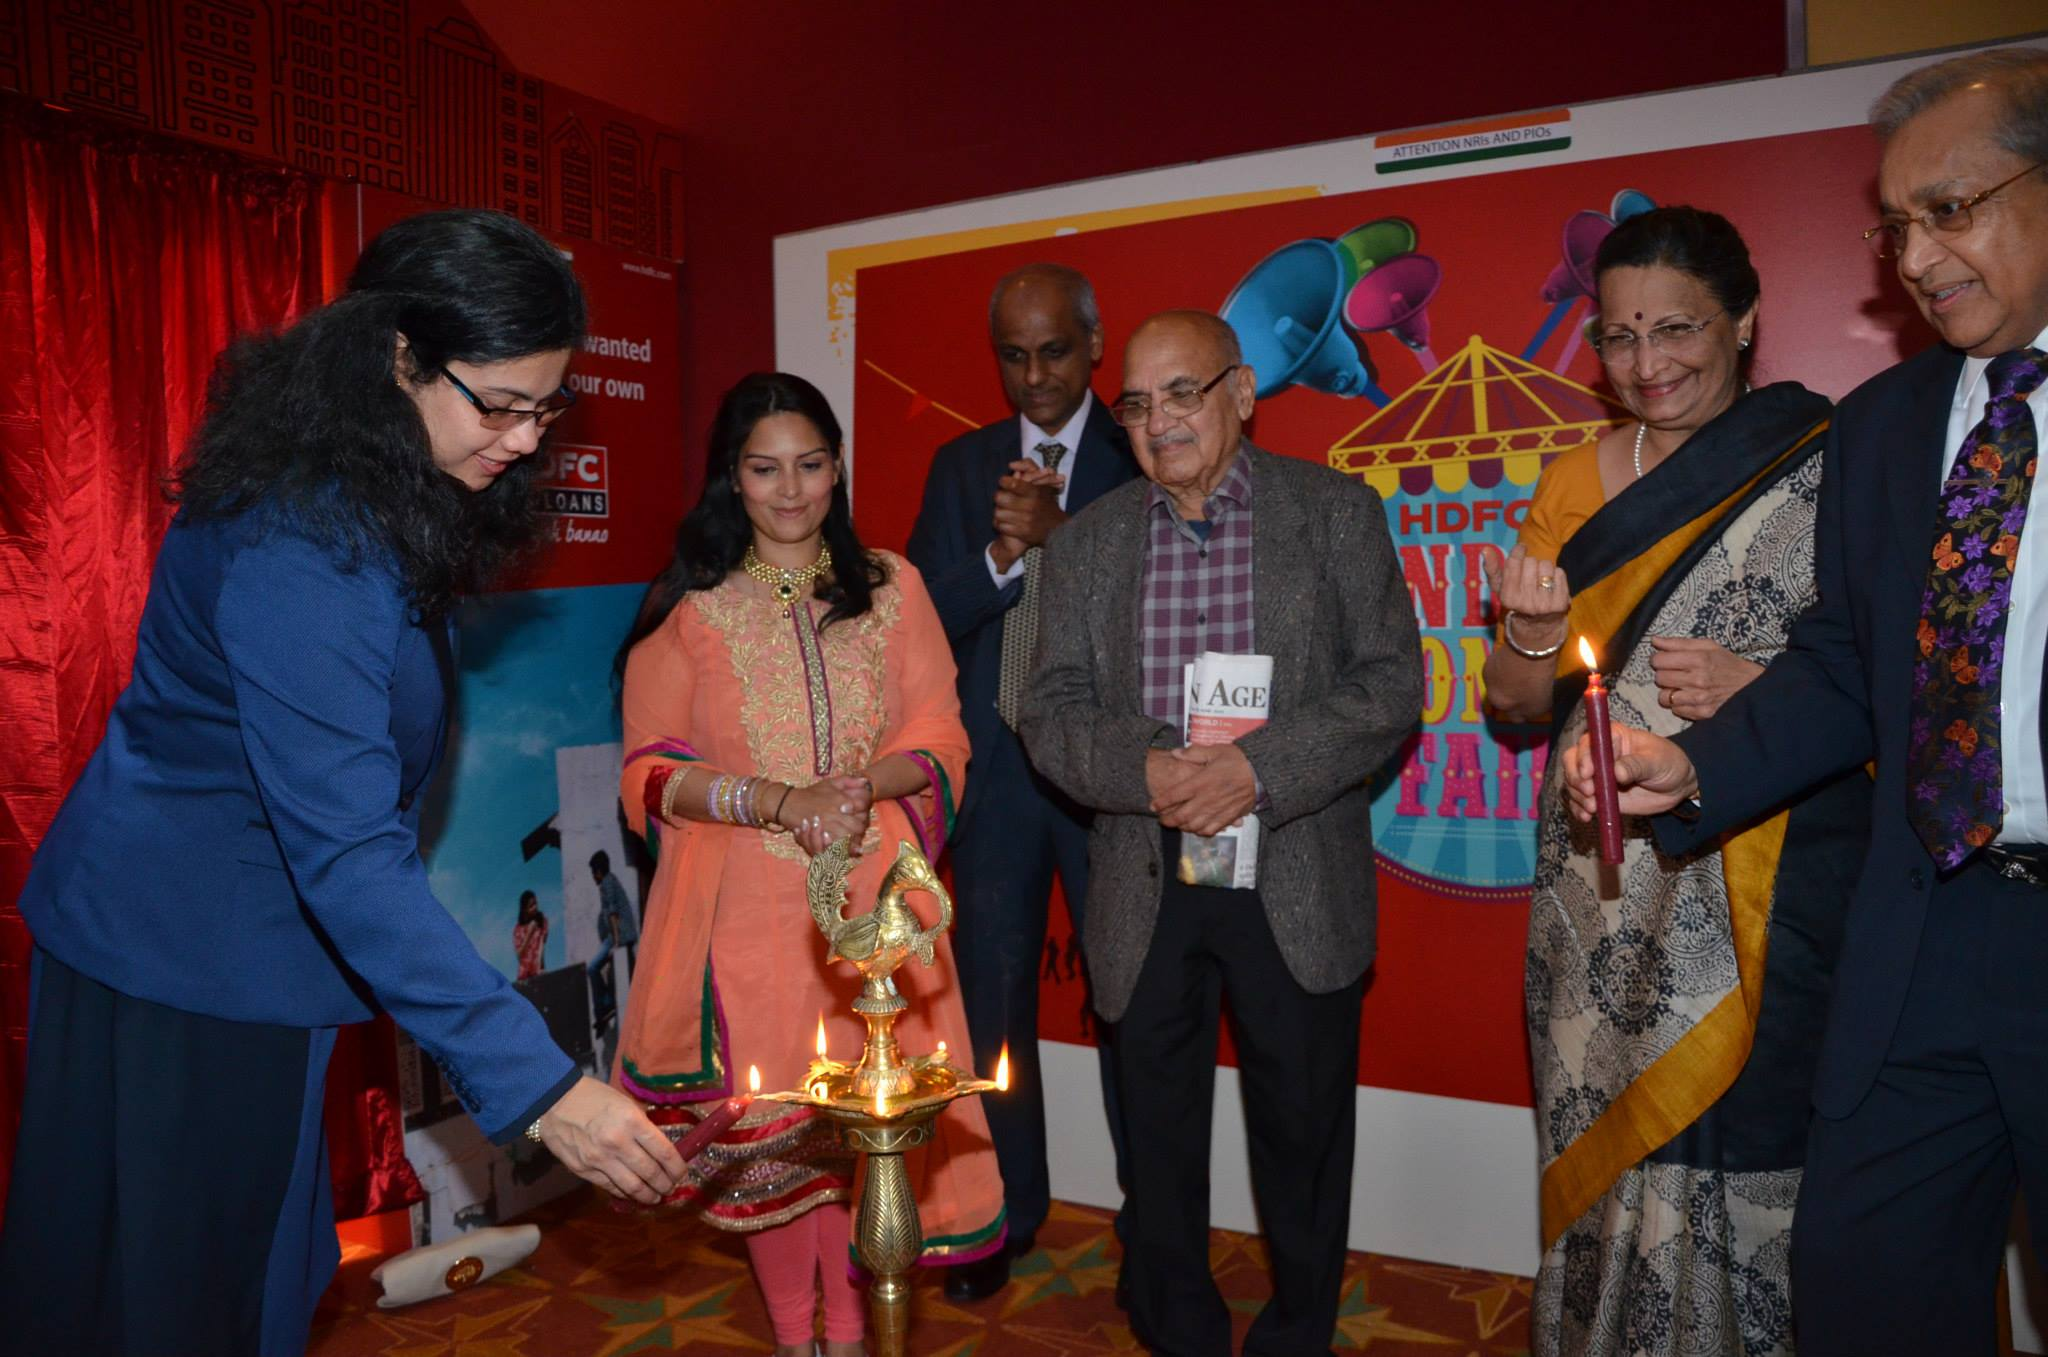 HDFC's 7th annual property event 'India Homes Fair' a resounding success